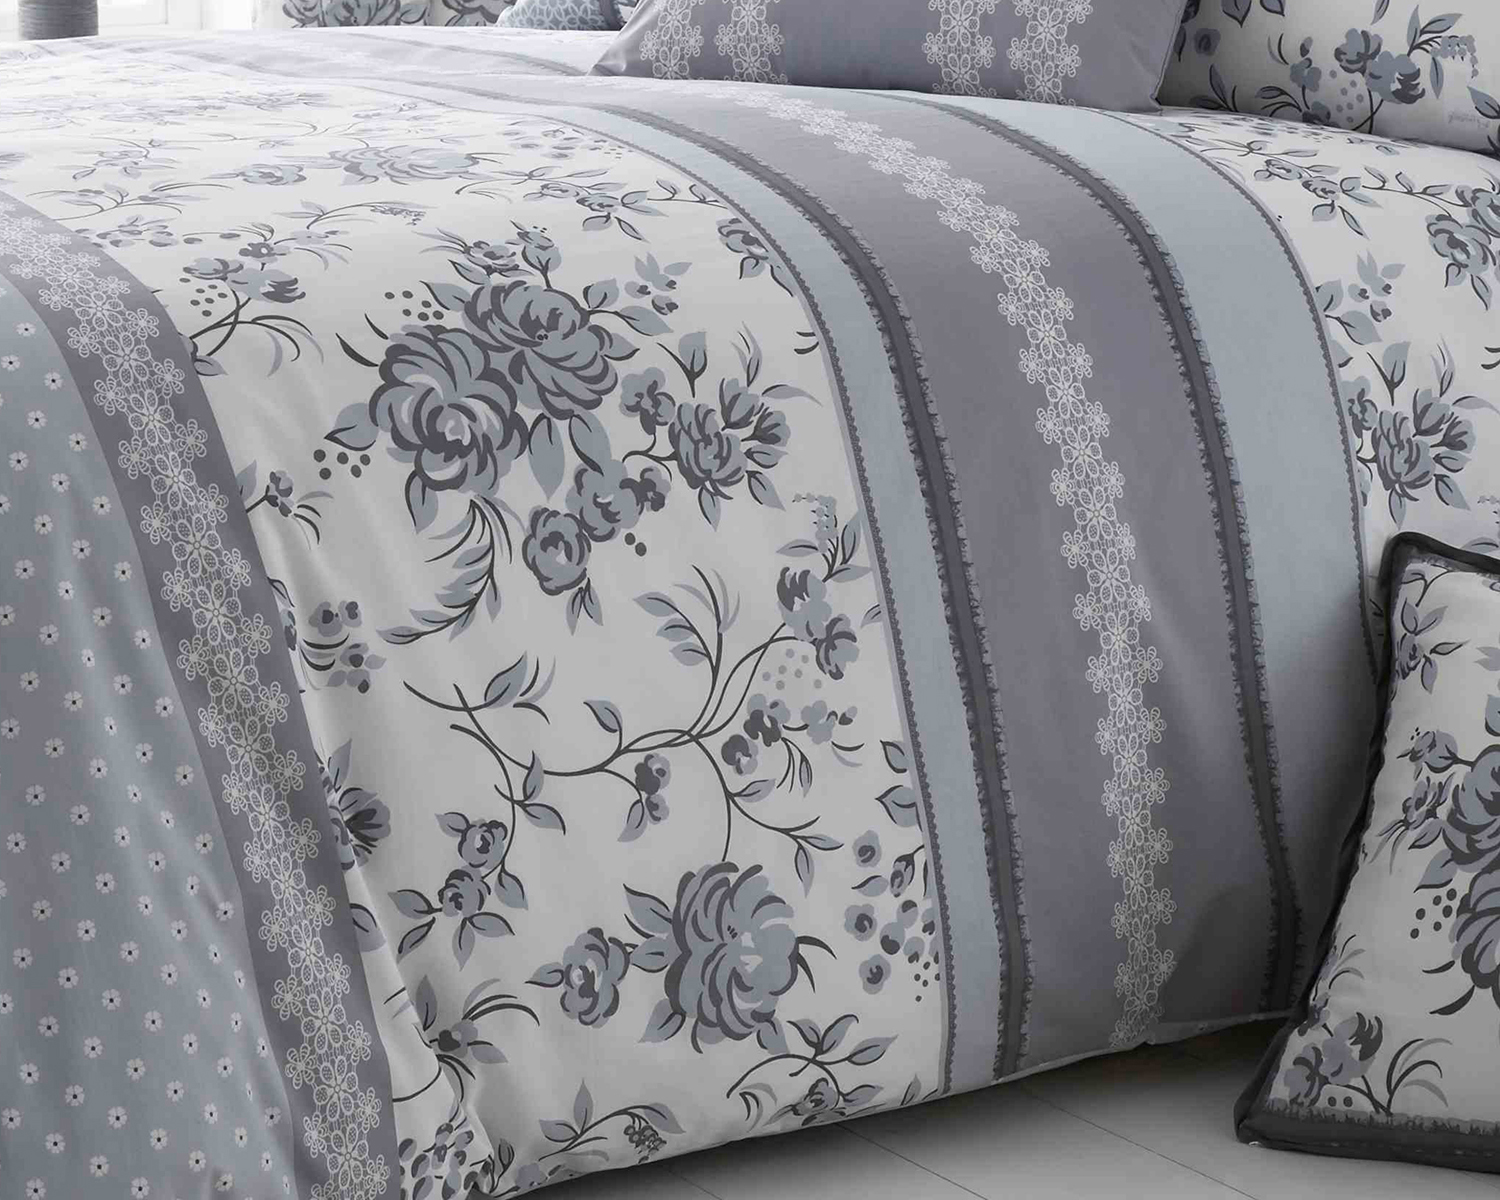 Pippin Collection Floral Design Bedding Range in Grey